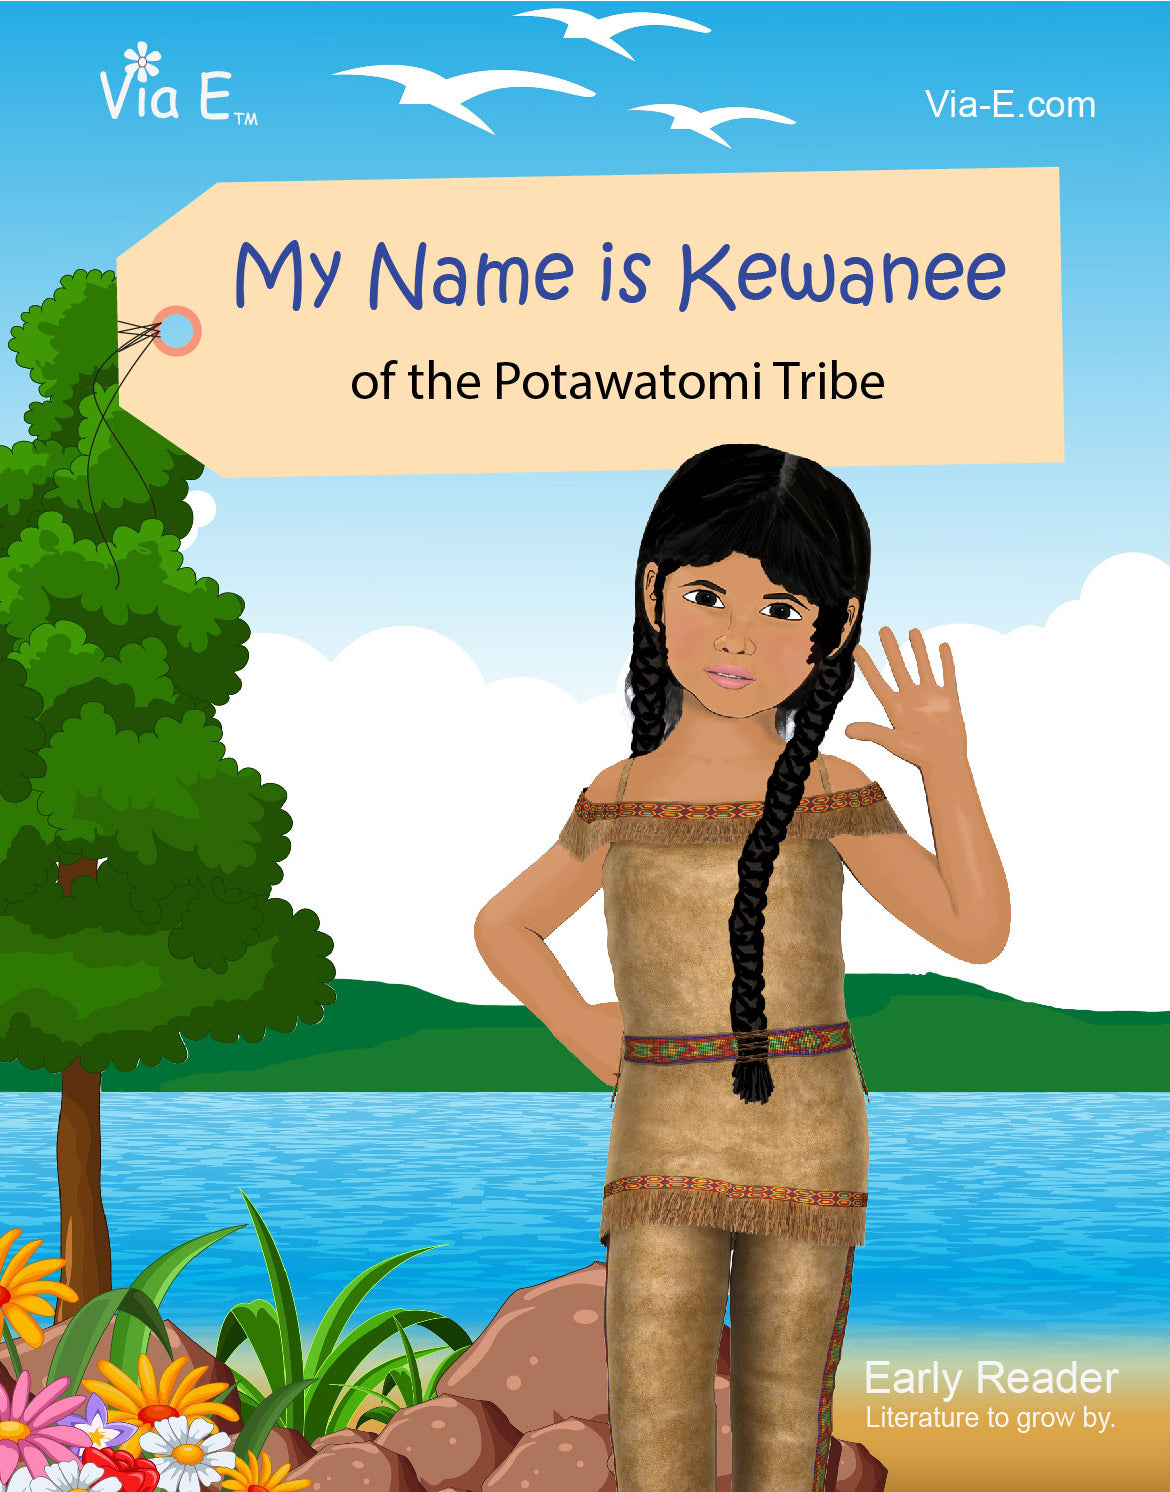 My Name is Kewanee of the Potawatomi Tribe - Let's Go To A Pow Wow